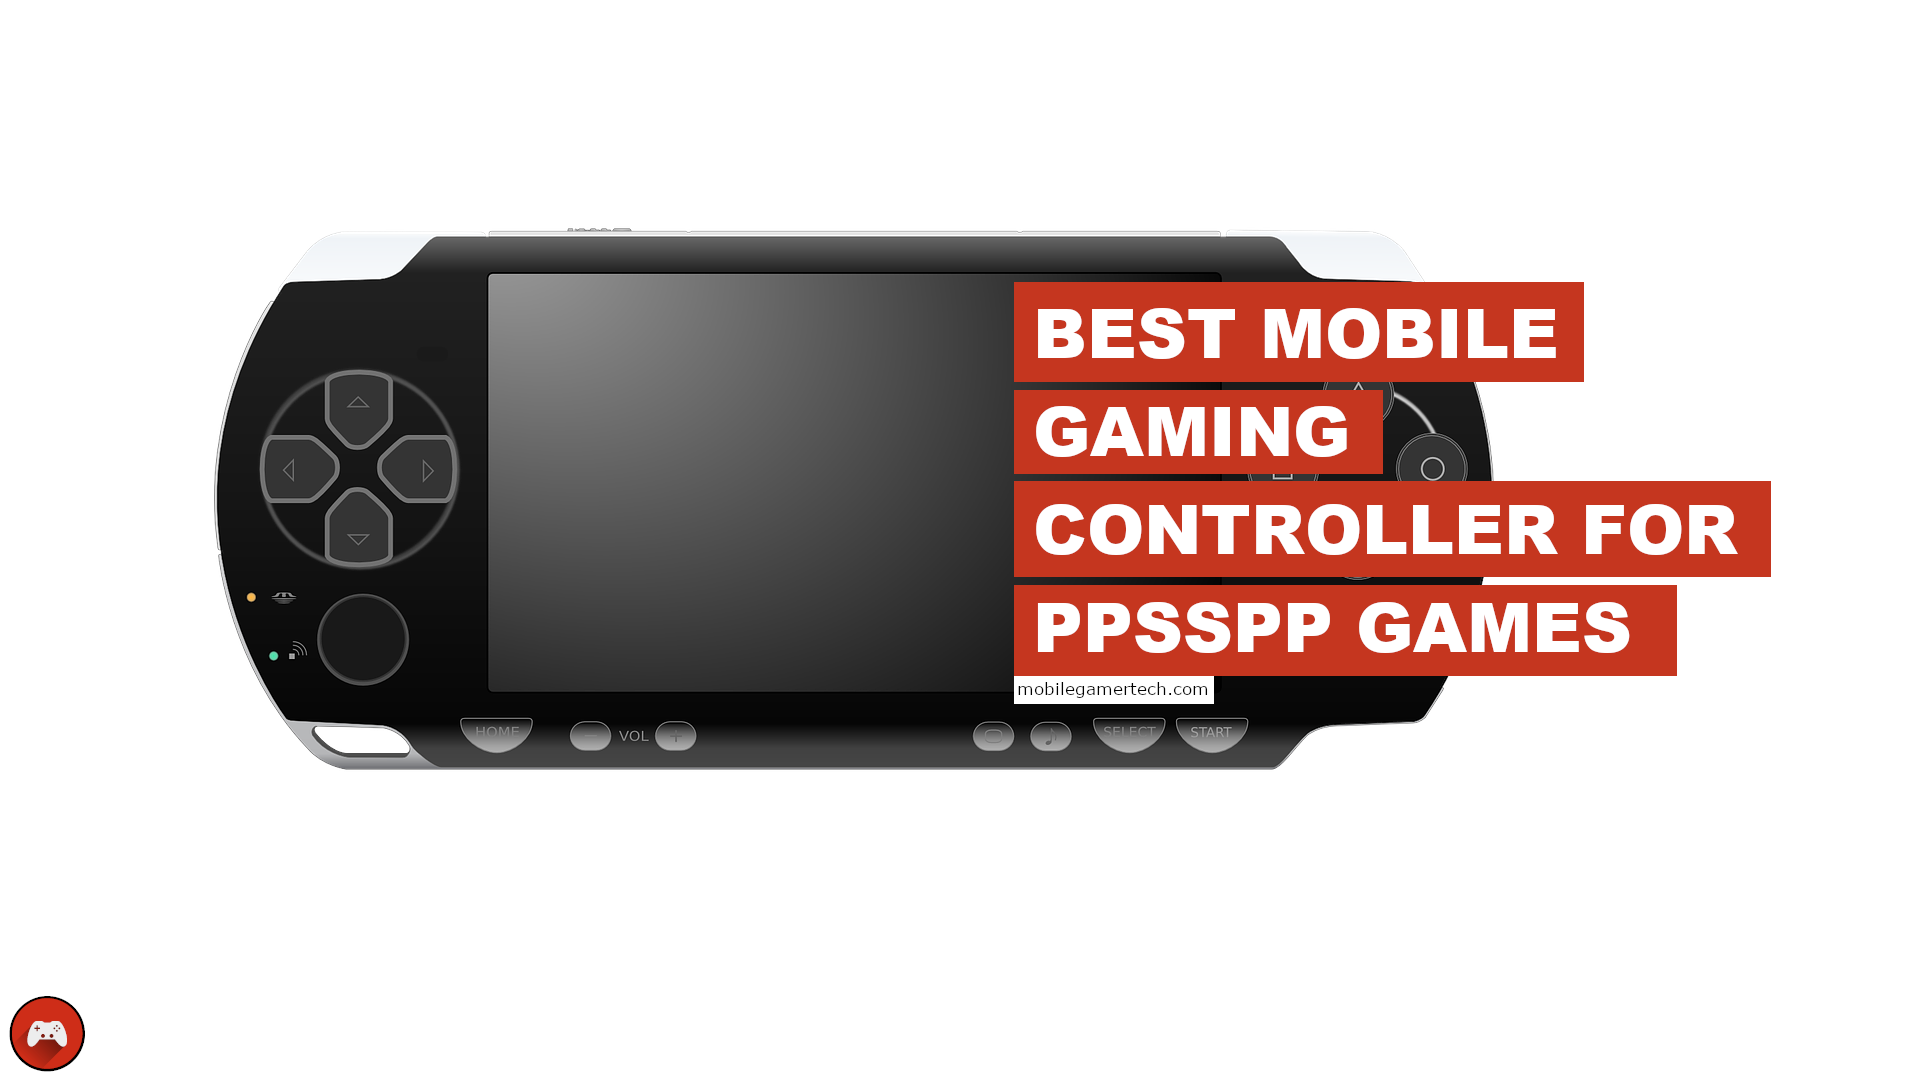 best mobile gaming controller for psp